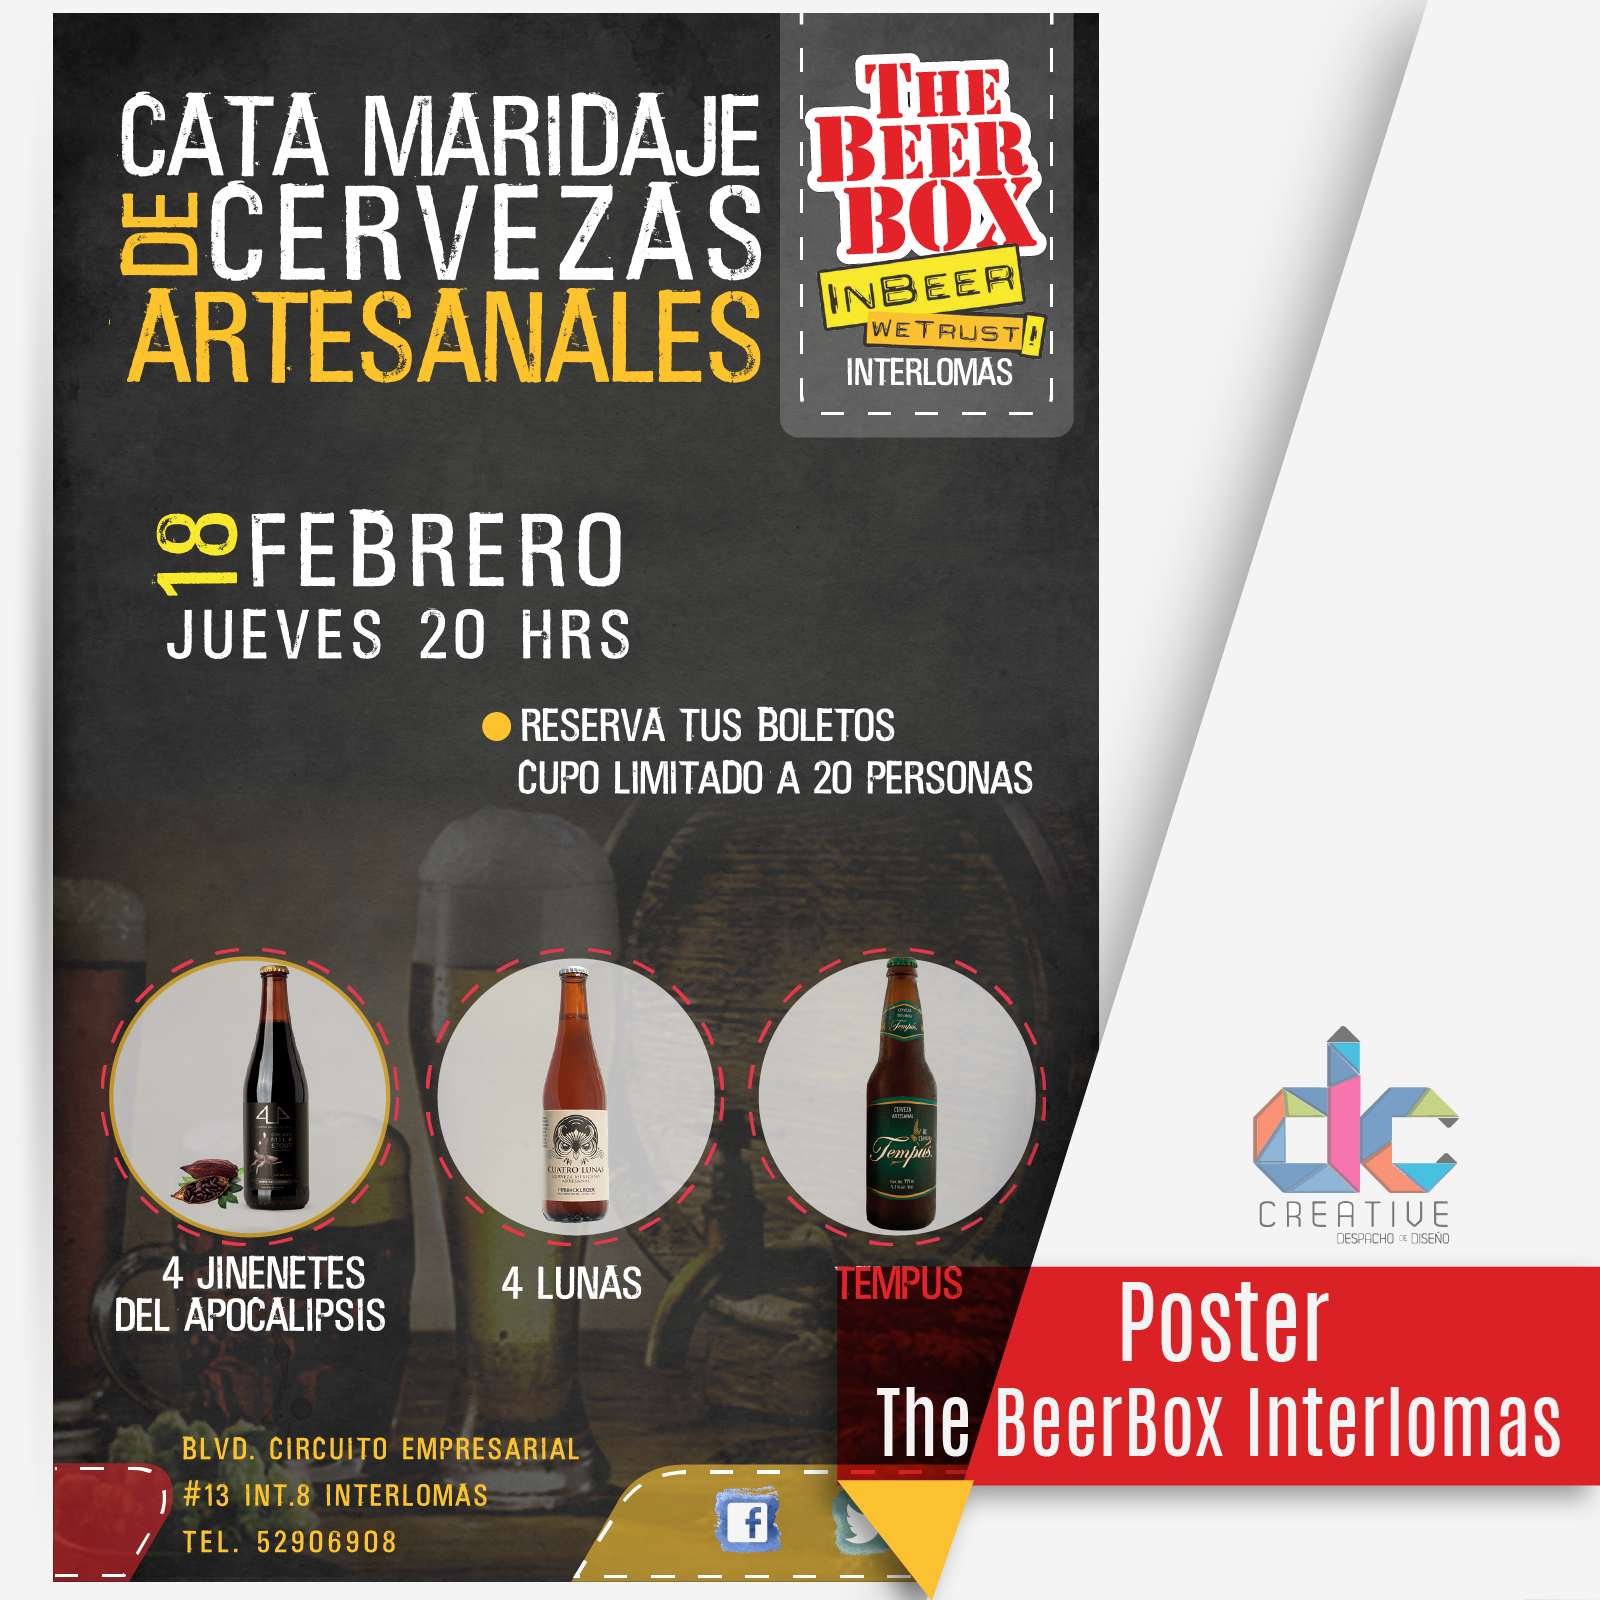 Offset Impresion de posters para The BeerBox Interlomas